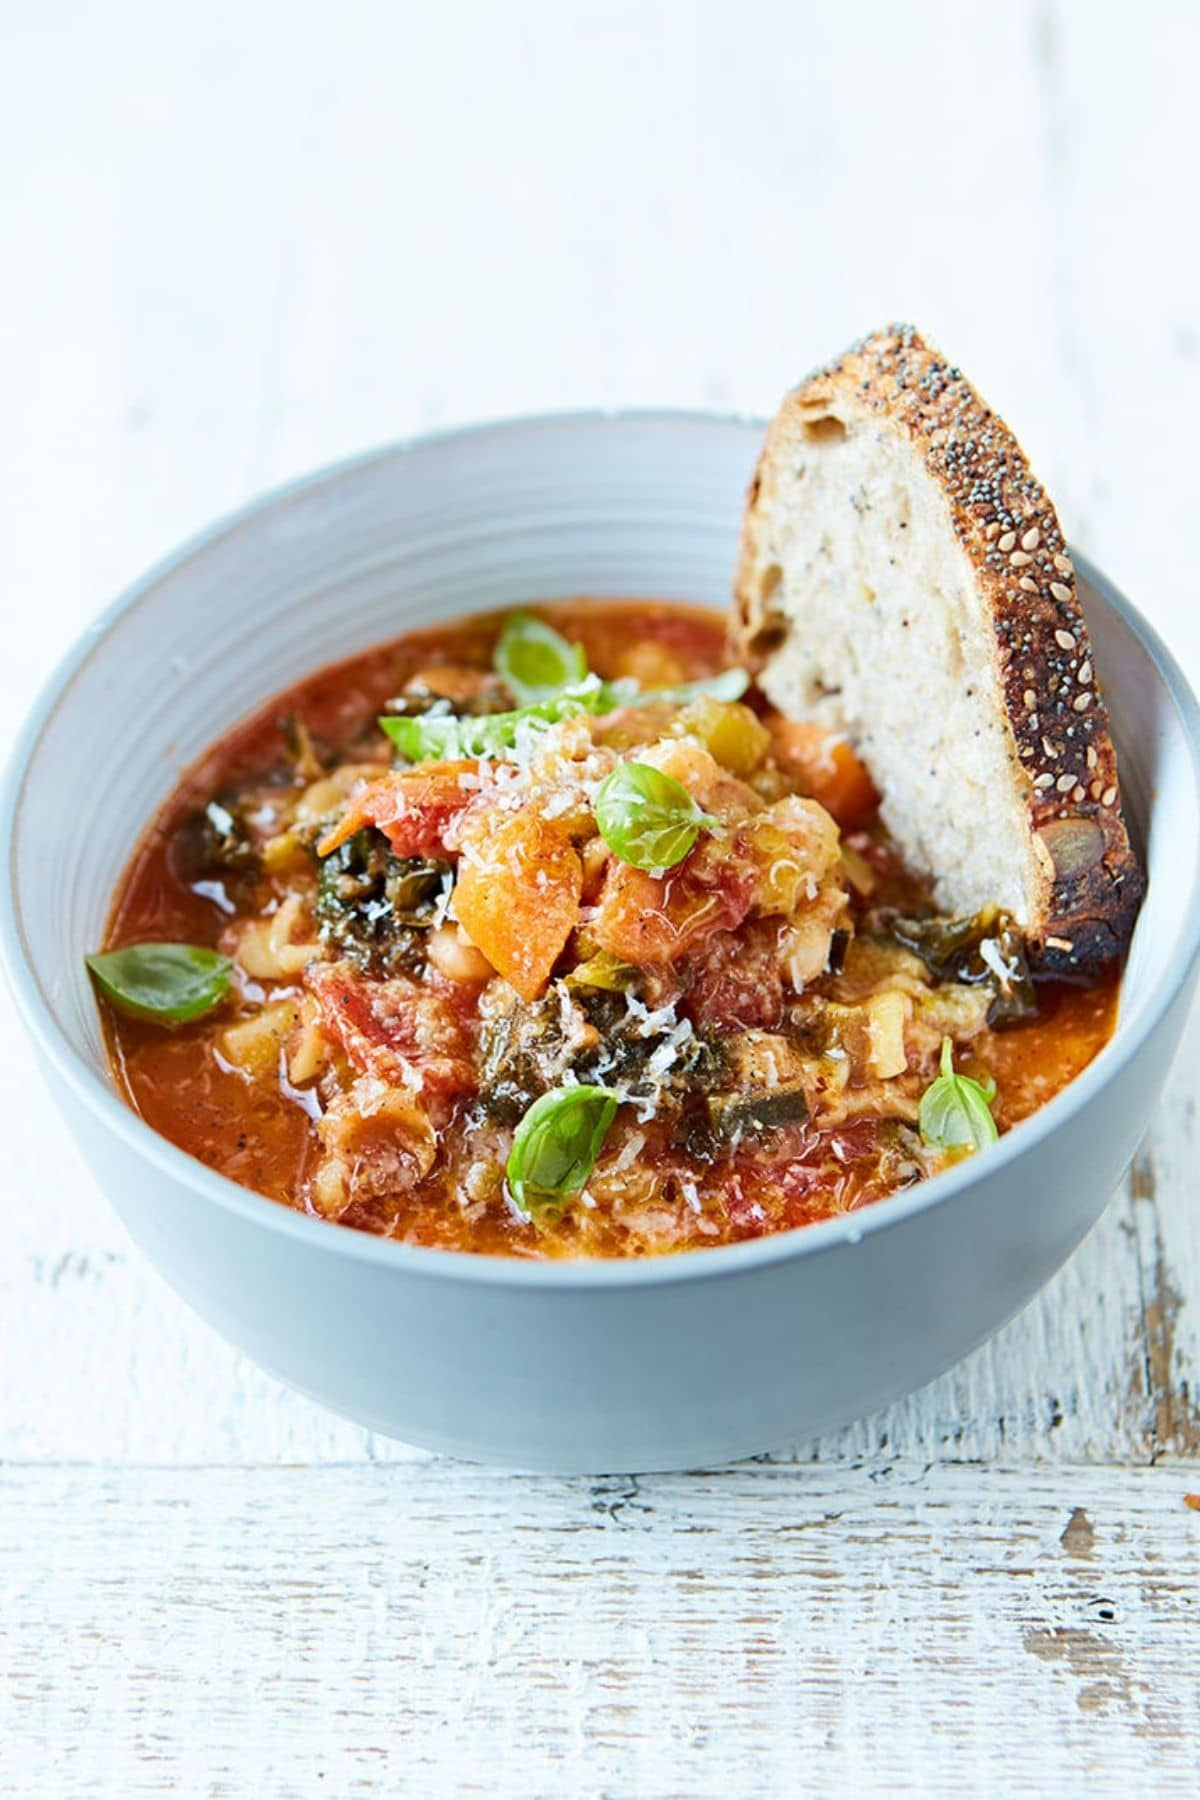 White bowl of minestrone soup topped with herbs and sliced bread